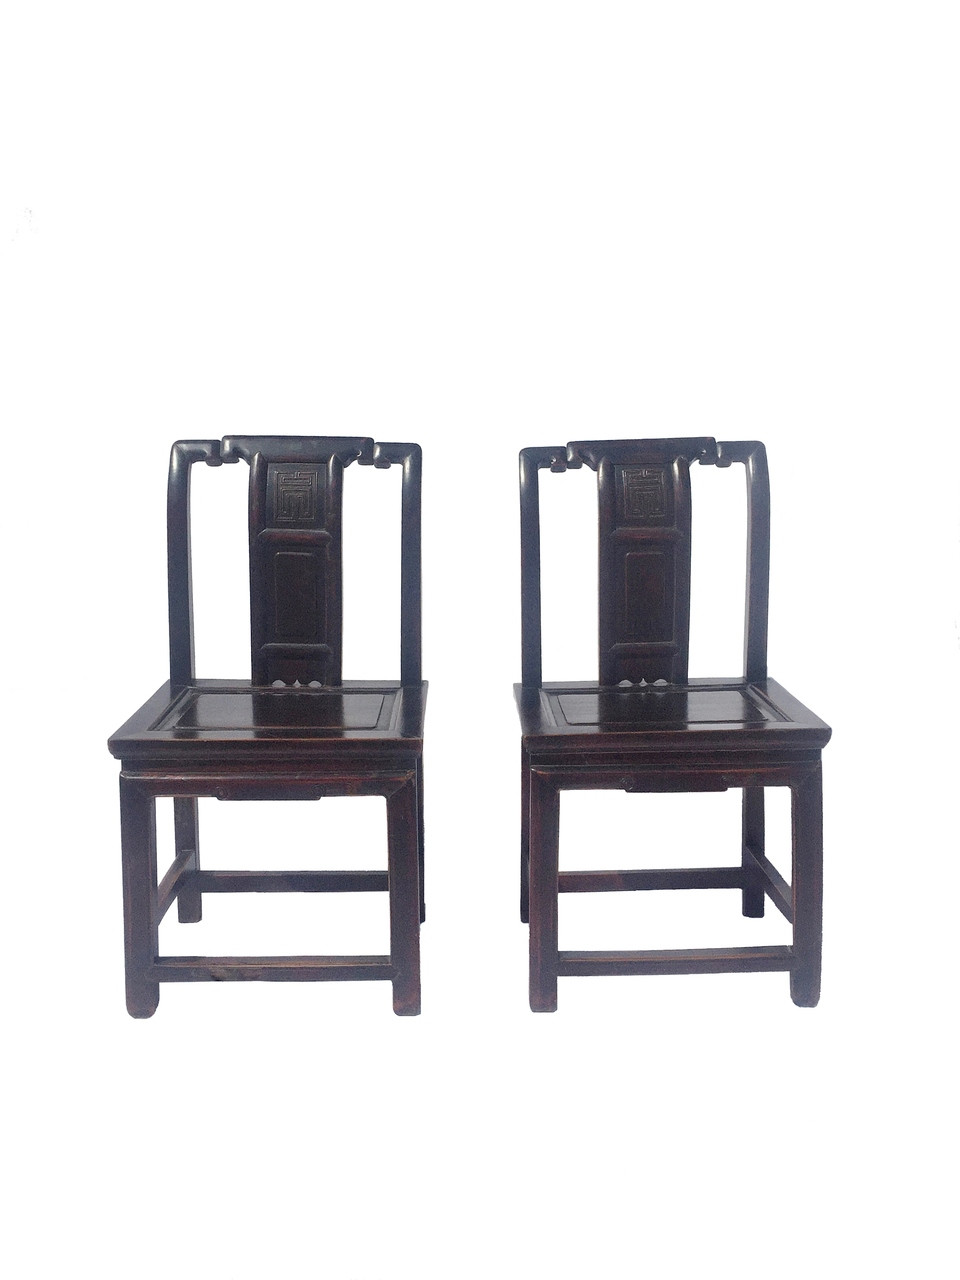 pair of antique chinese chairs with longevity motif - Pair Of Antique Chinese Chairs With Longevity Motif - EASTERN LIVING